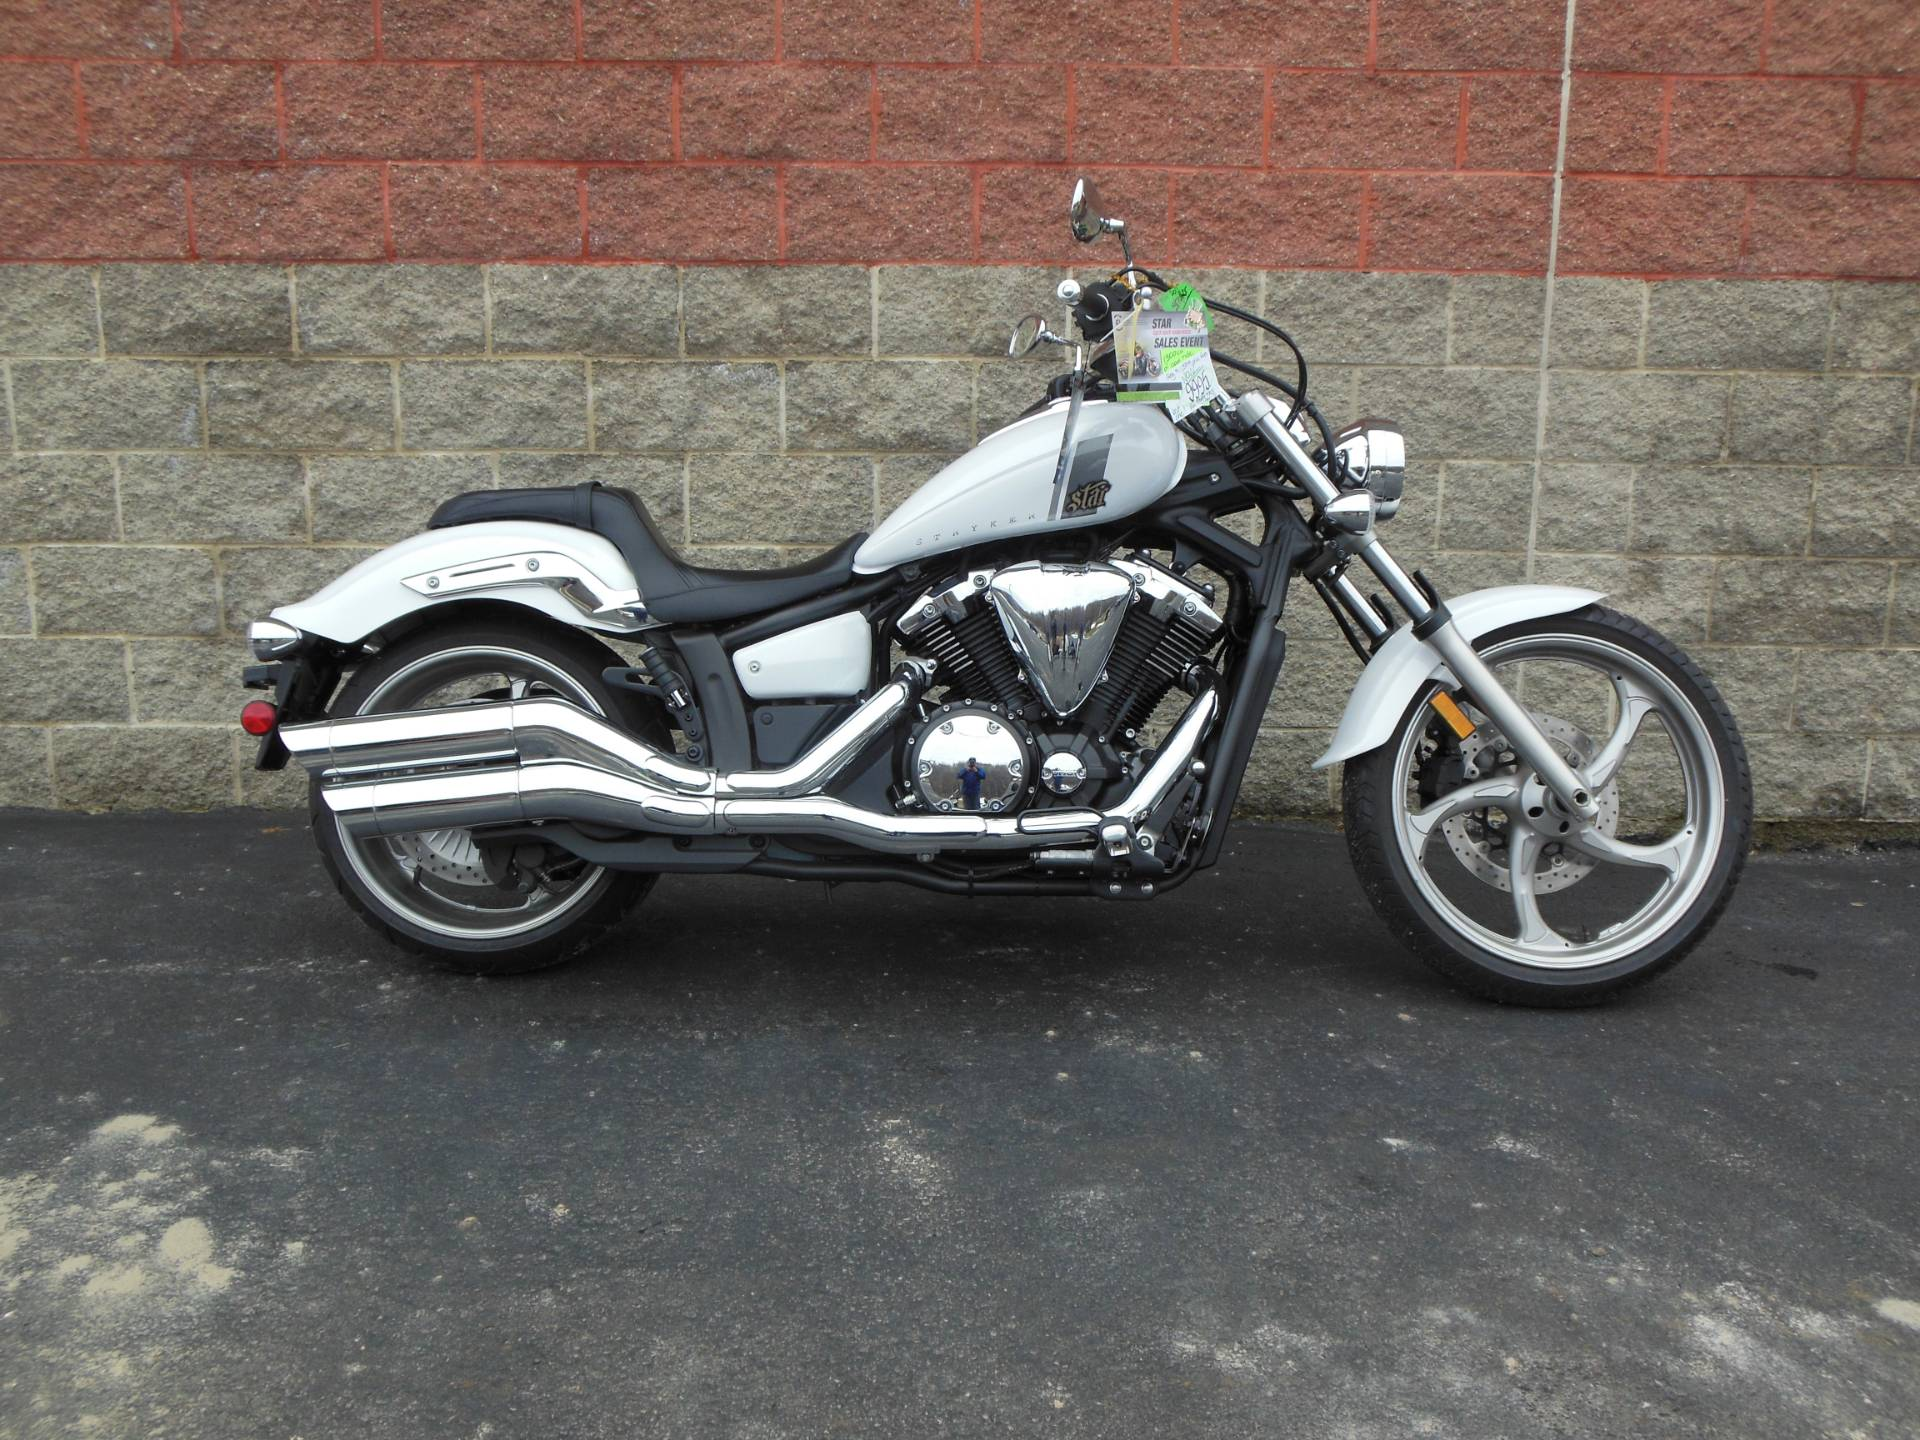 New 2013 yamaha stryker motorcycles in galeton pa for Yamaha installment financing